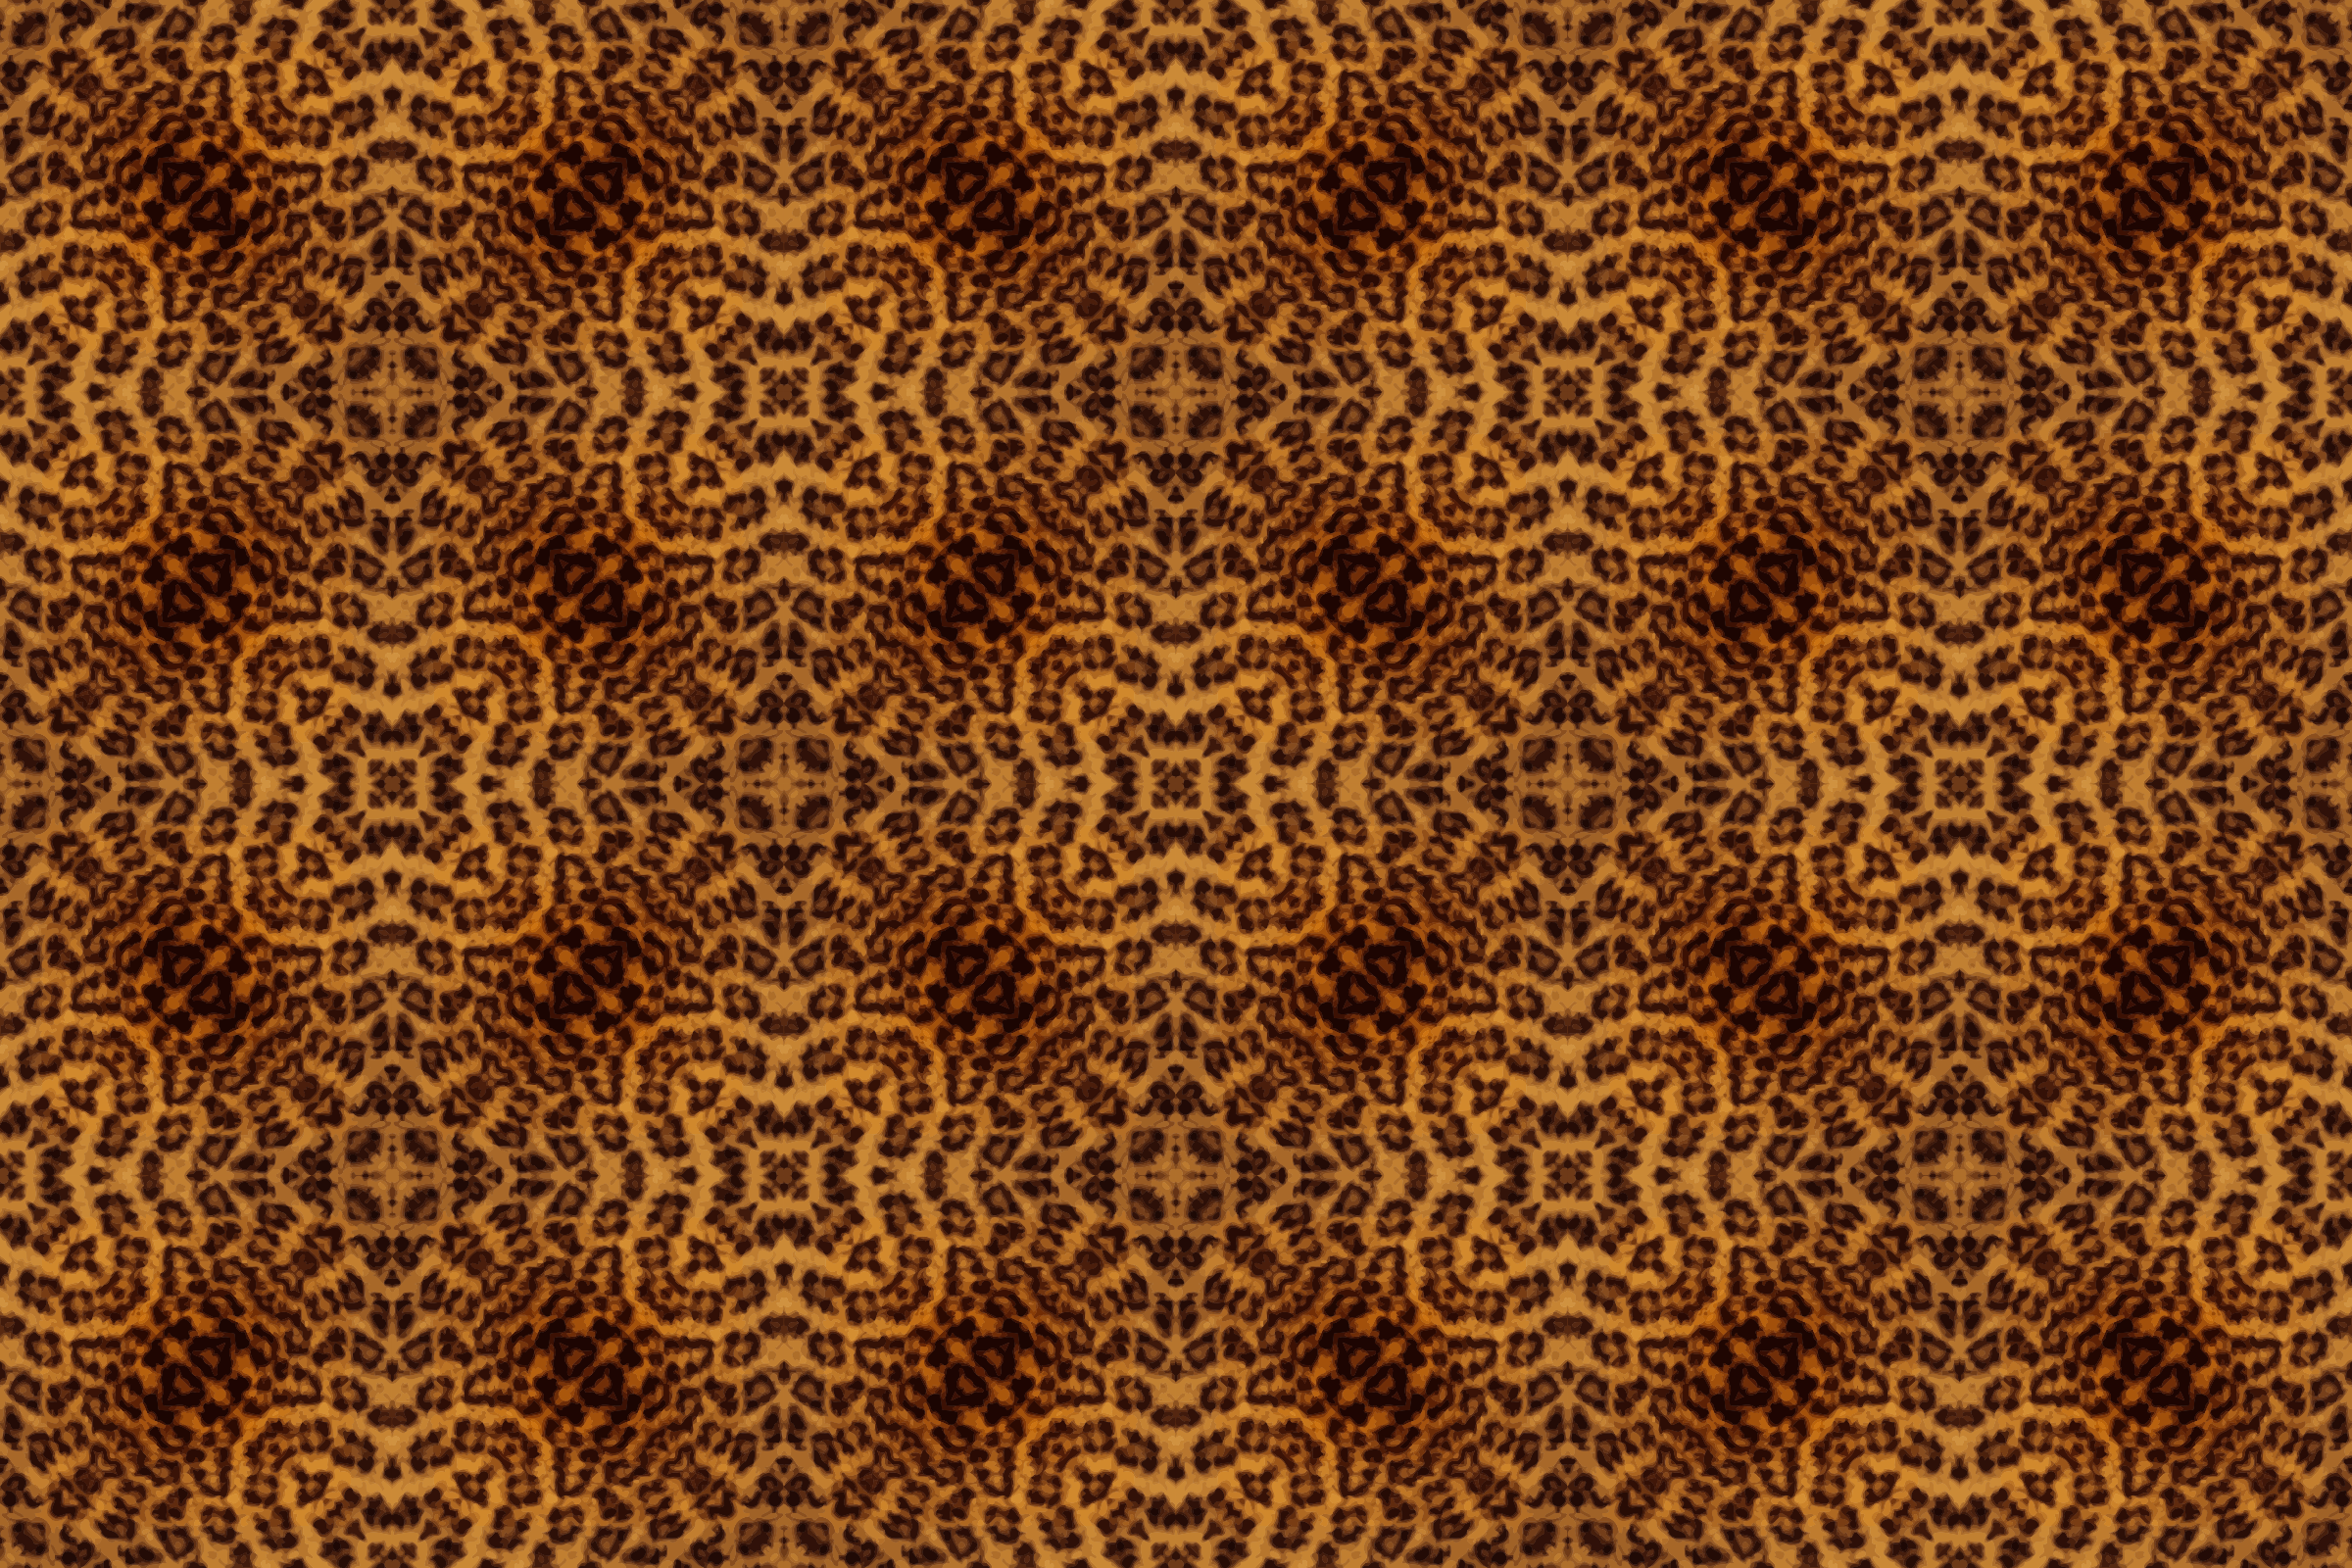 Leopard fur pattern by Firkin